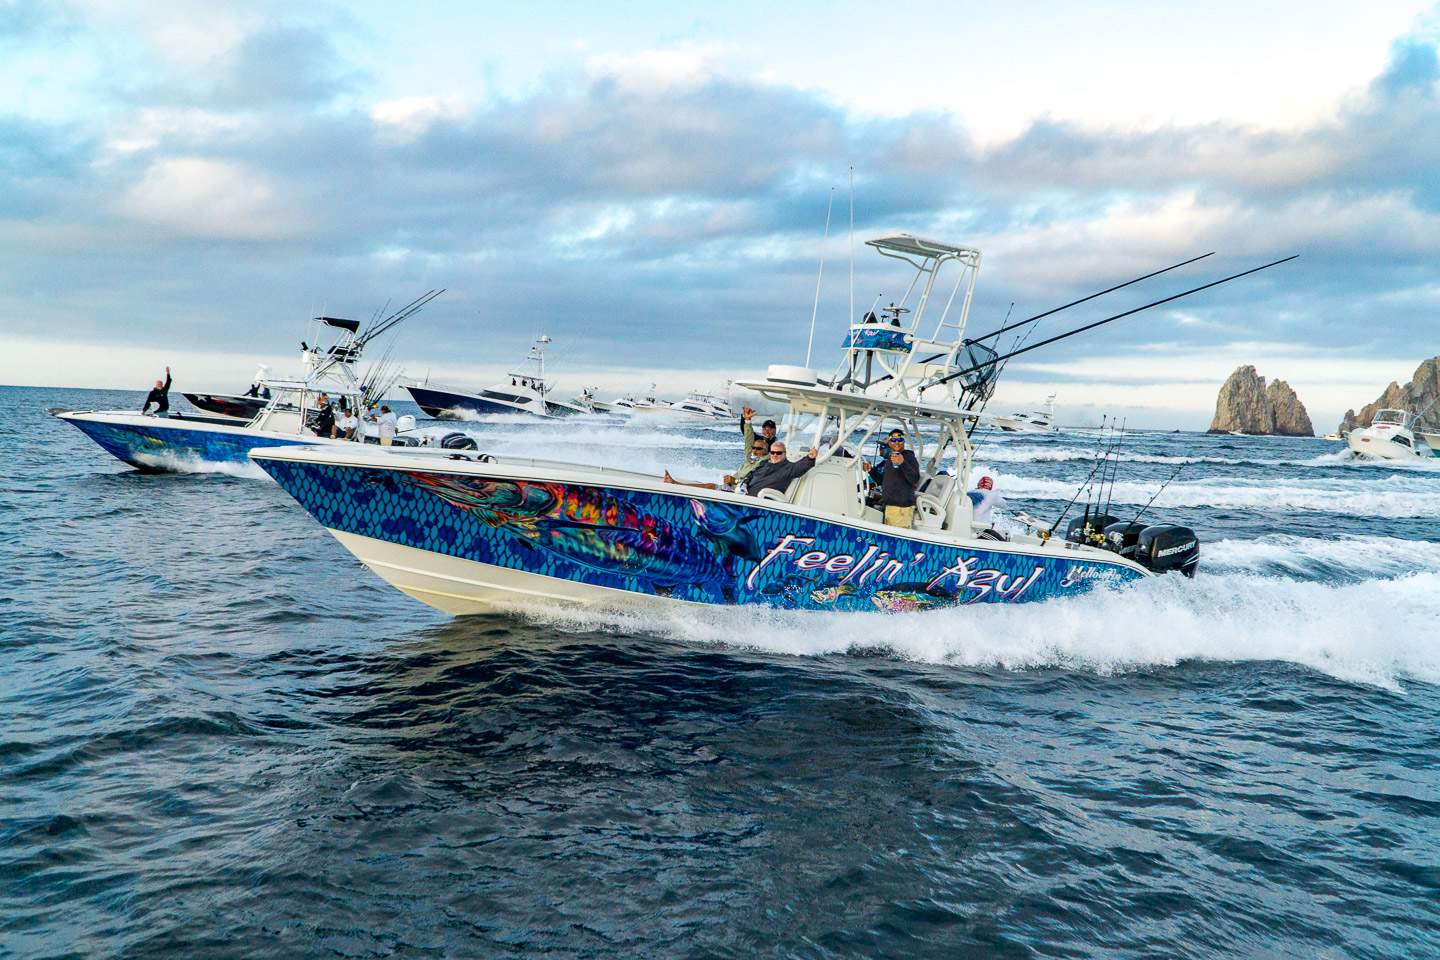 2019 Pelagic Triple Crown Cabo Boats Running